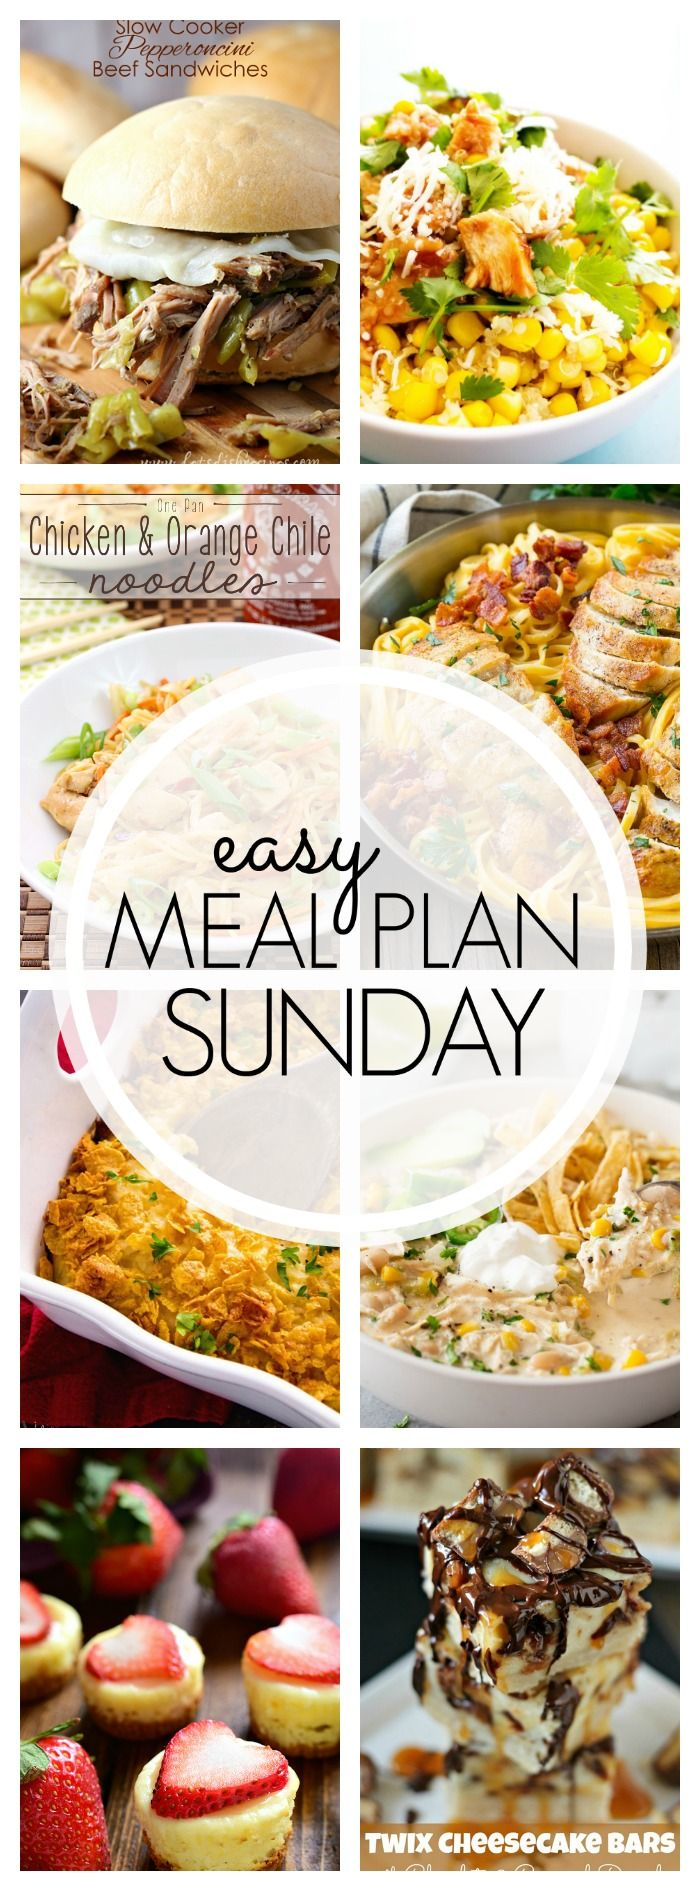 With Easy Meal Plan Sunday Week 87 - six dinners, two desserts, a breakfast and a healthy menu option will help get the week's meal planning done quickly!